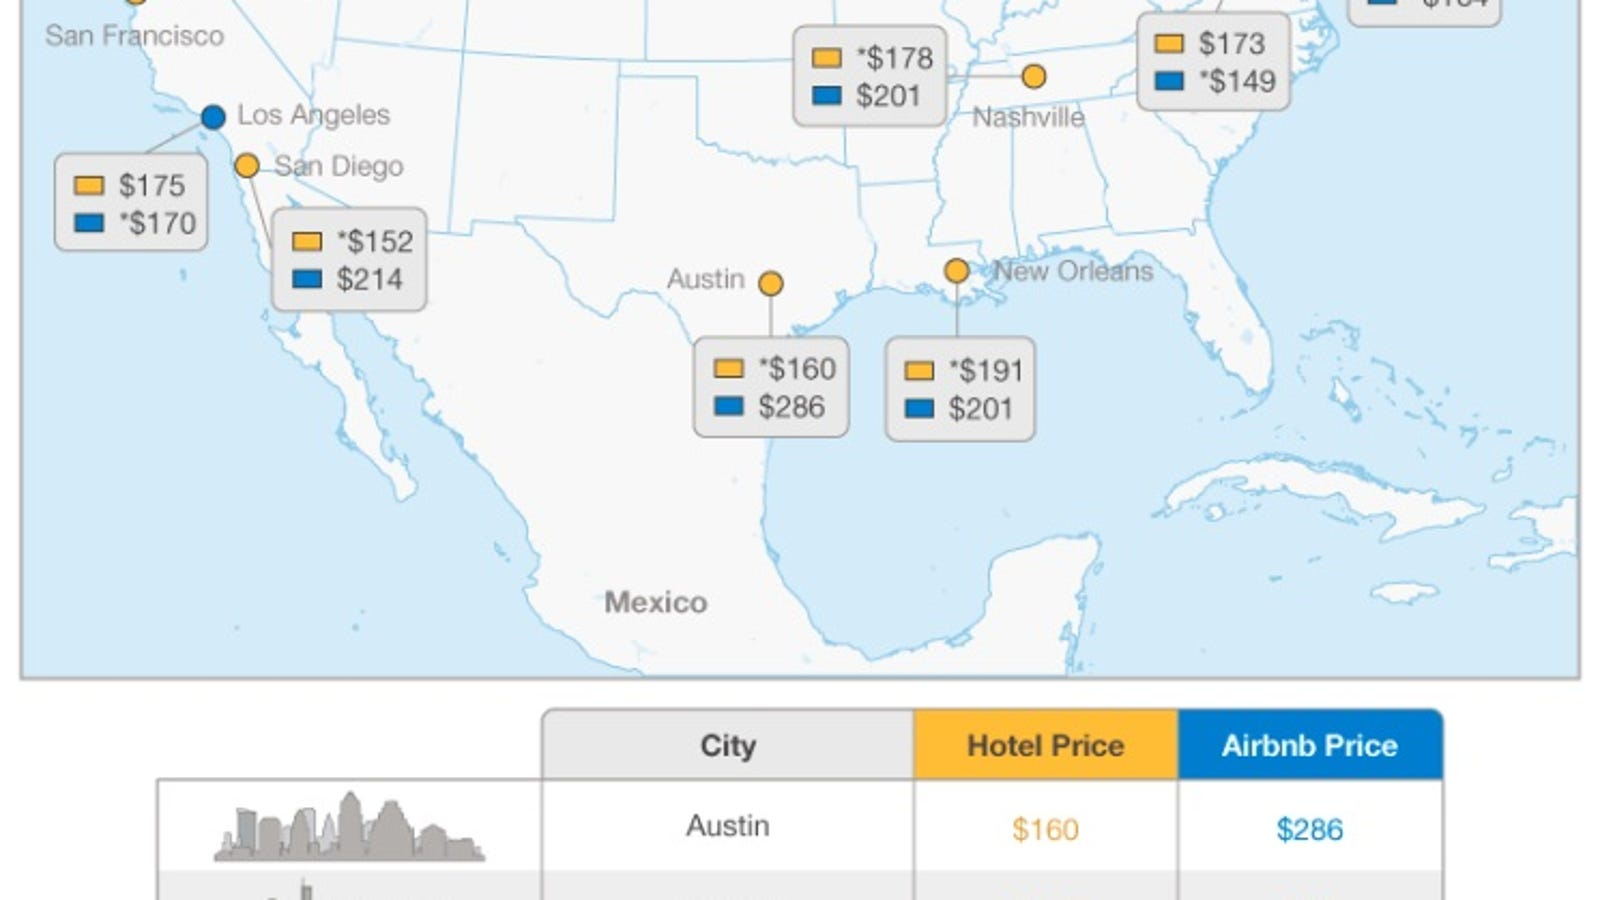 The U.S. Cities Where It's Cheaper to Book an Airbnb Instead of a Hotel